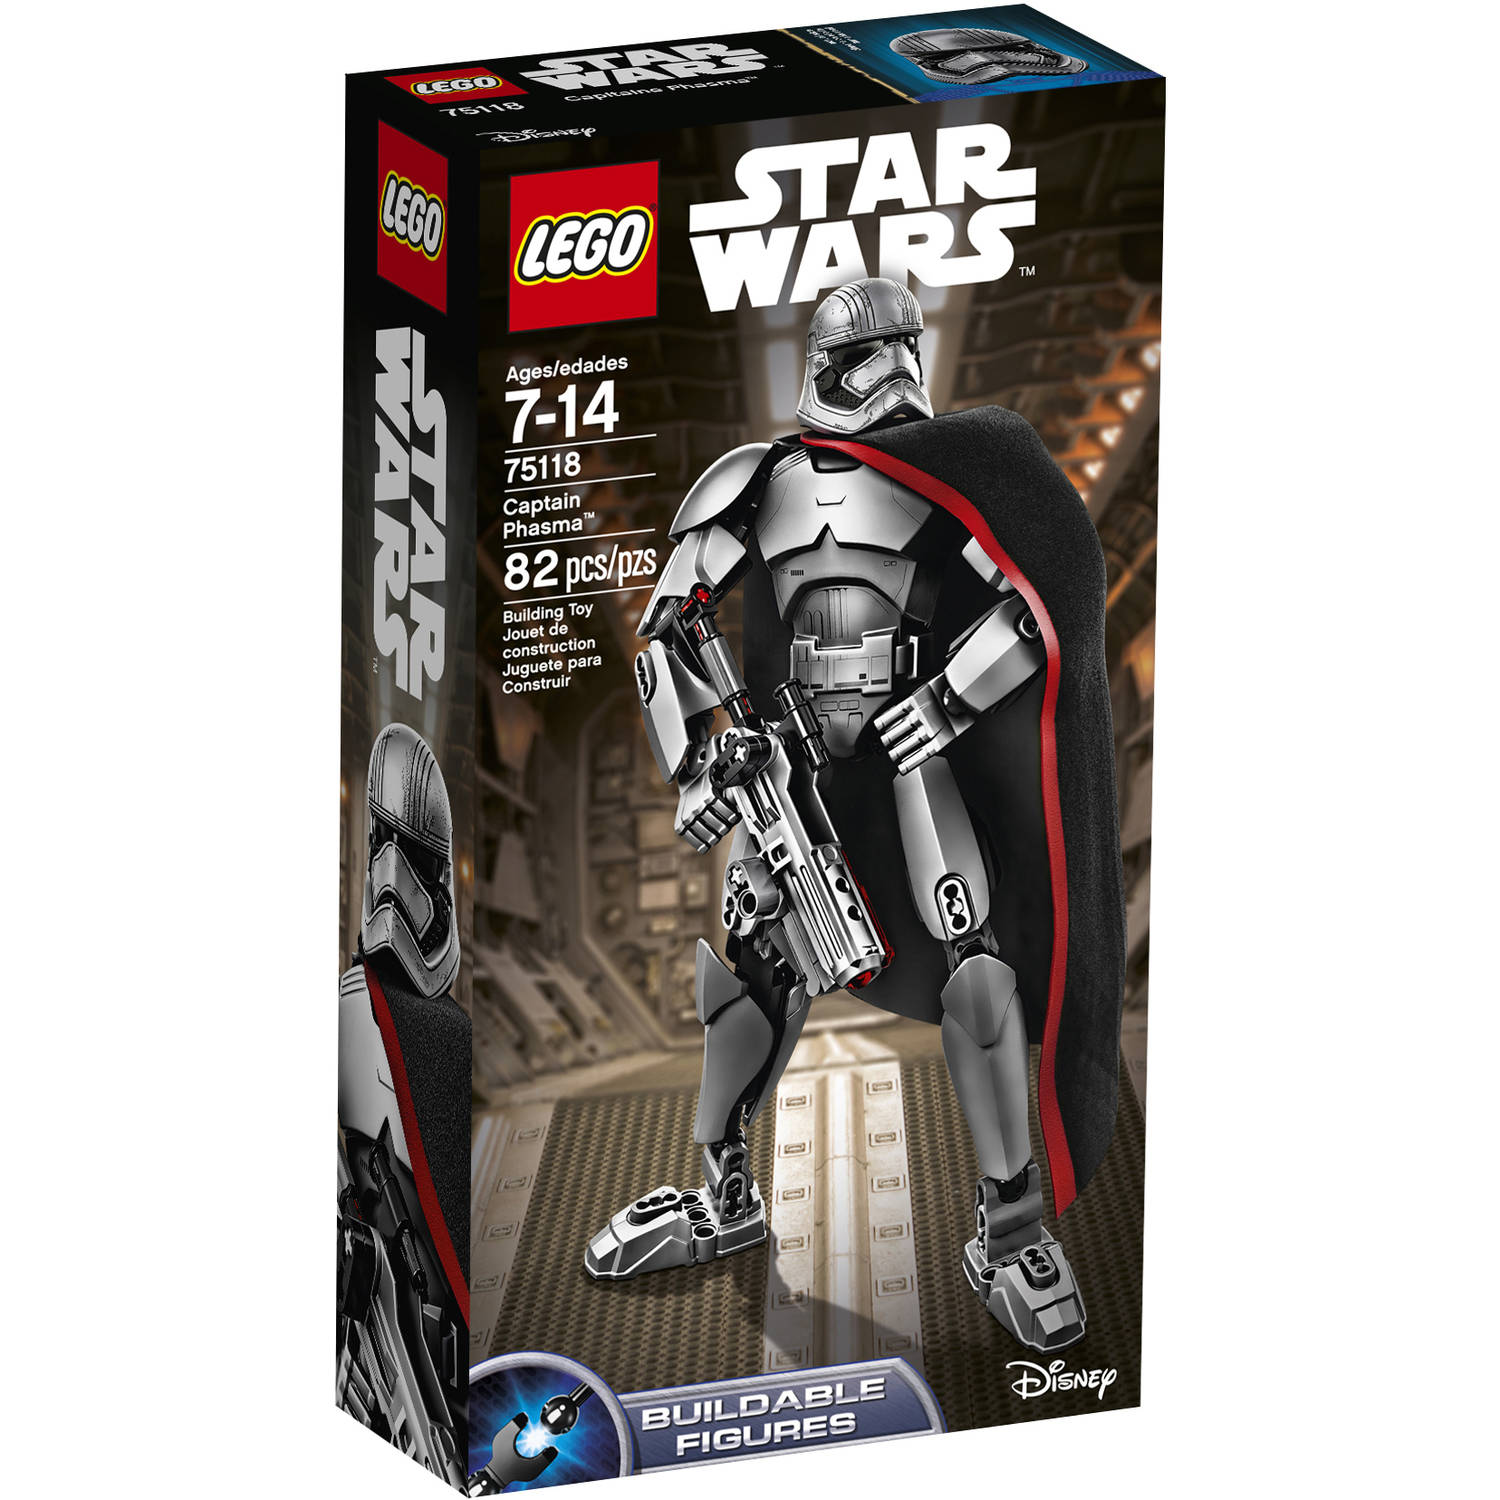 "LEGO Constraction Star Wars Captain Phasma""75118"